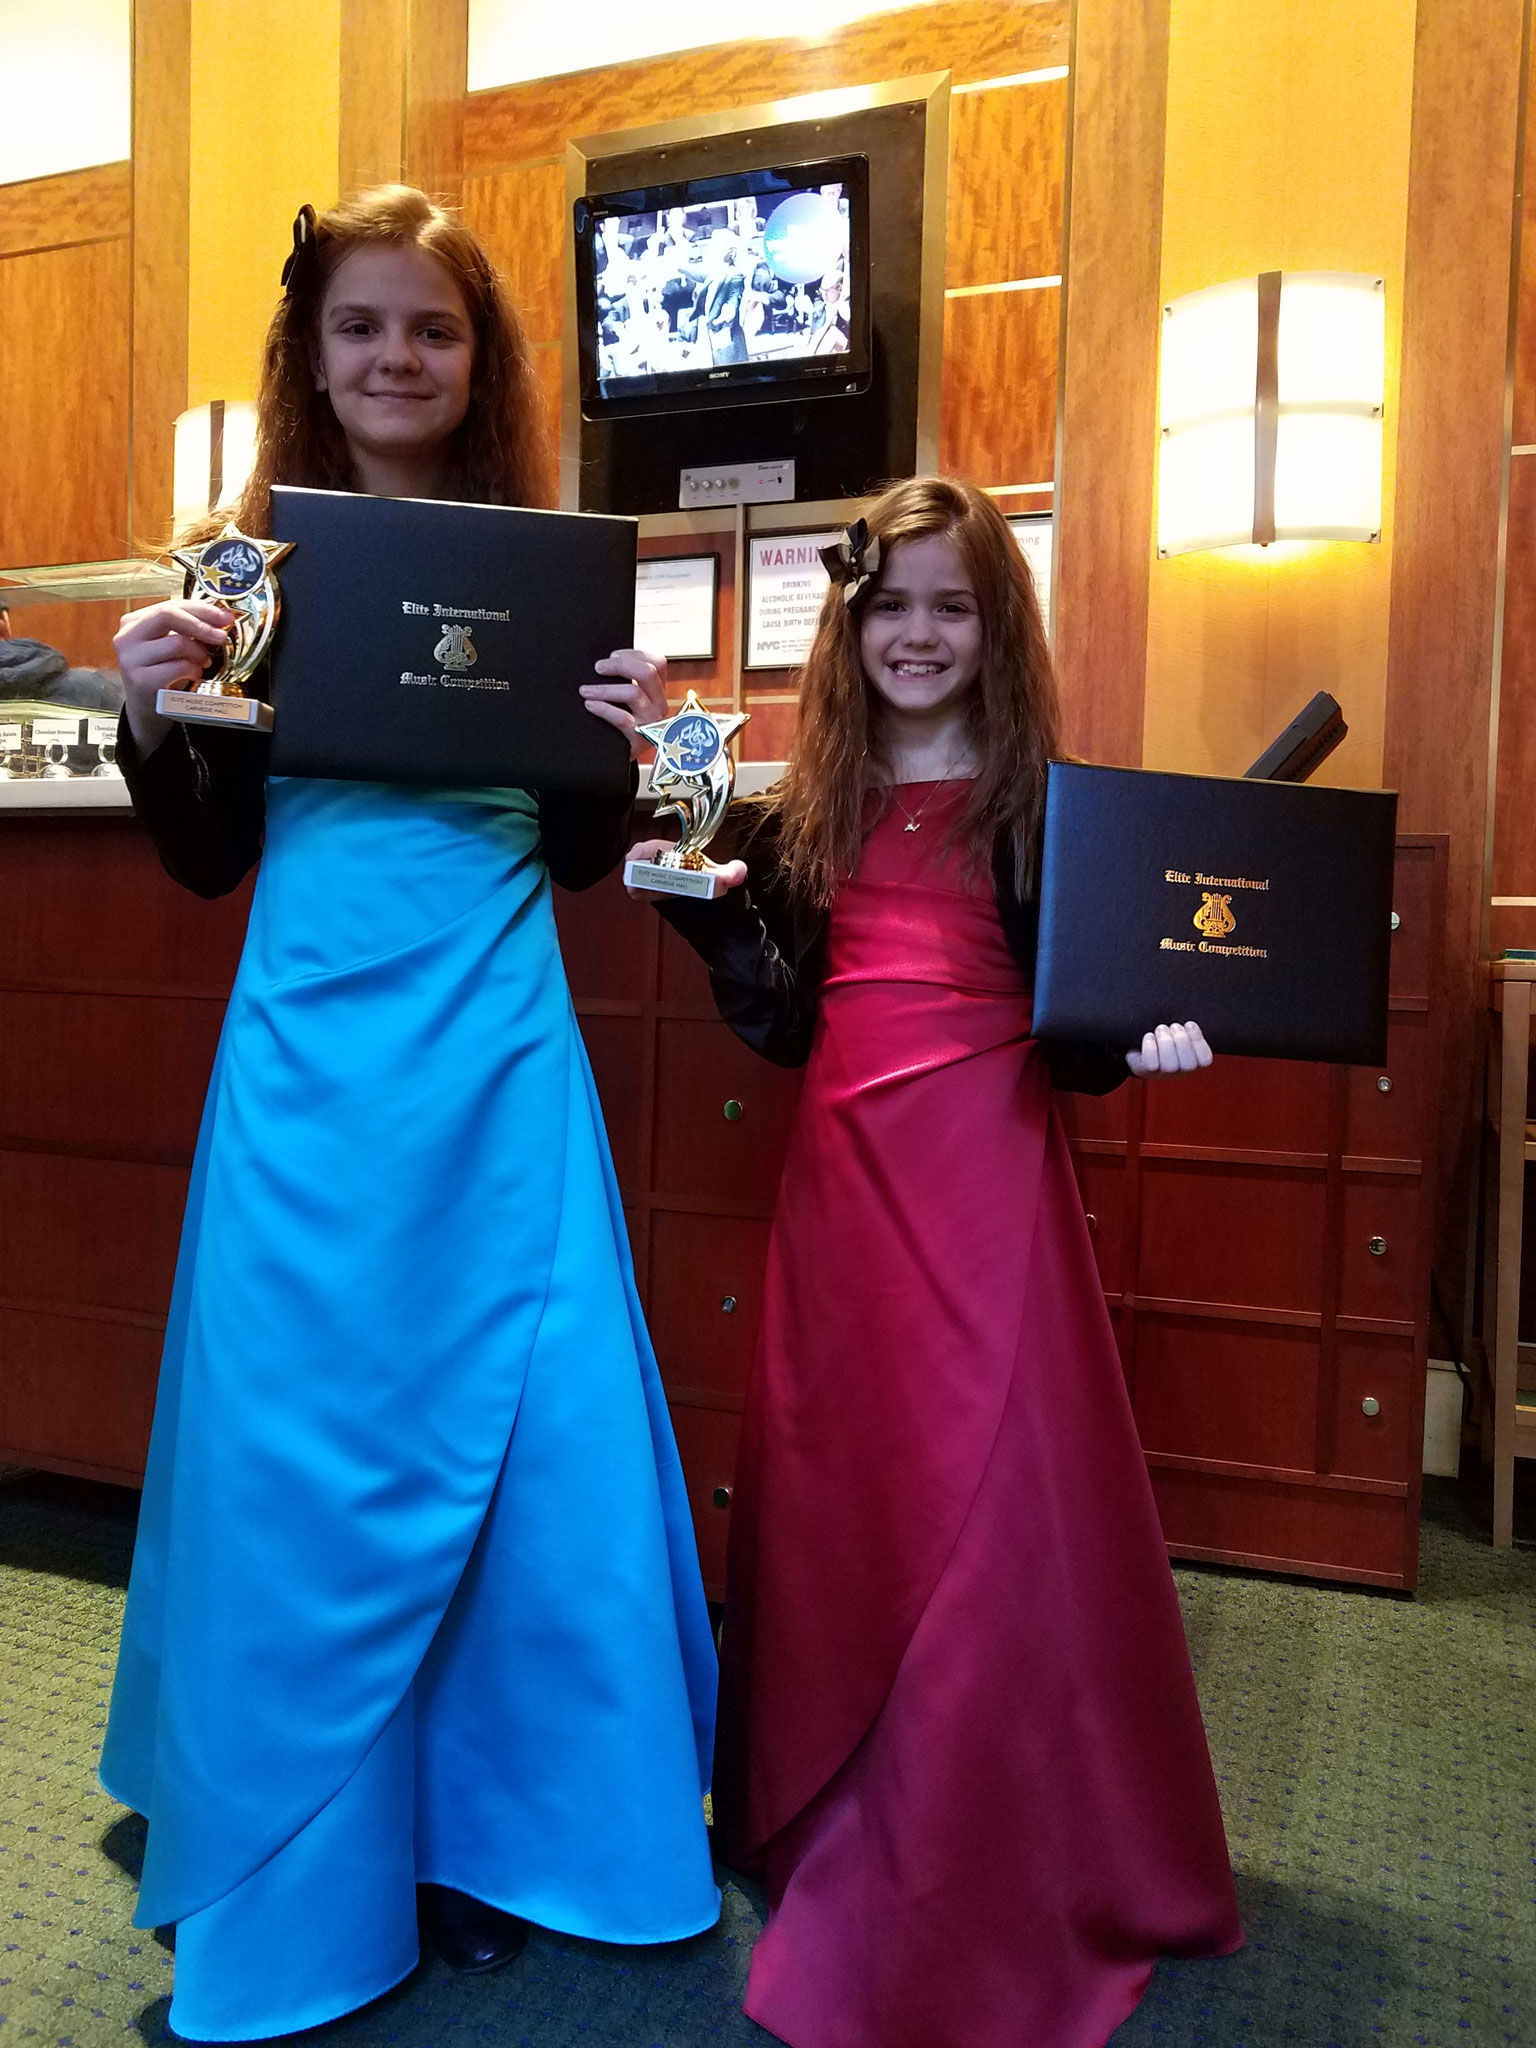 ANNA AND ELISA PLANO WON THE ELITE INTERNATIONAL PIANO COMPETITION - PIANO SOLO & PIANO 4 HANDS